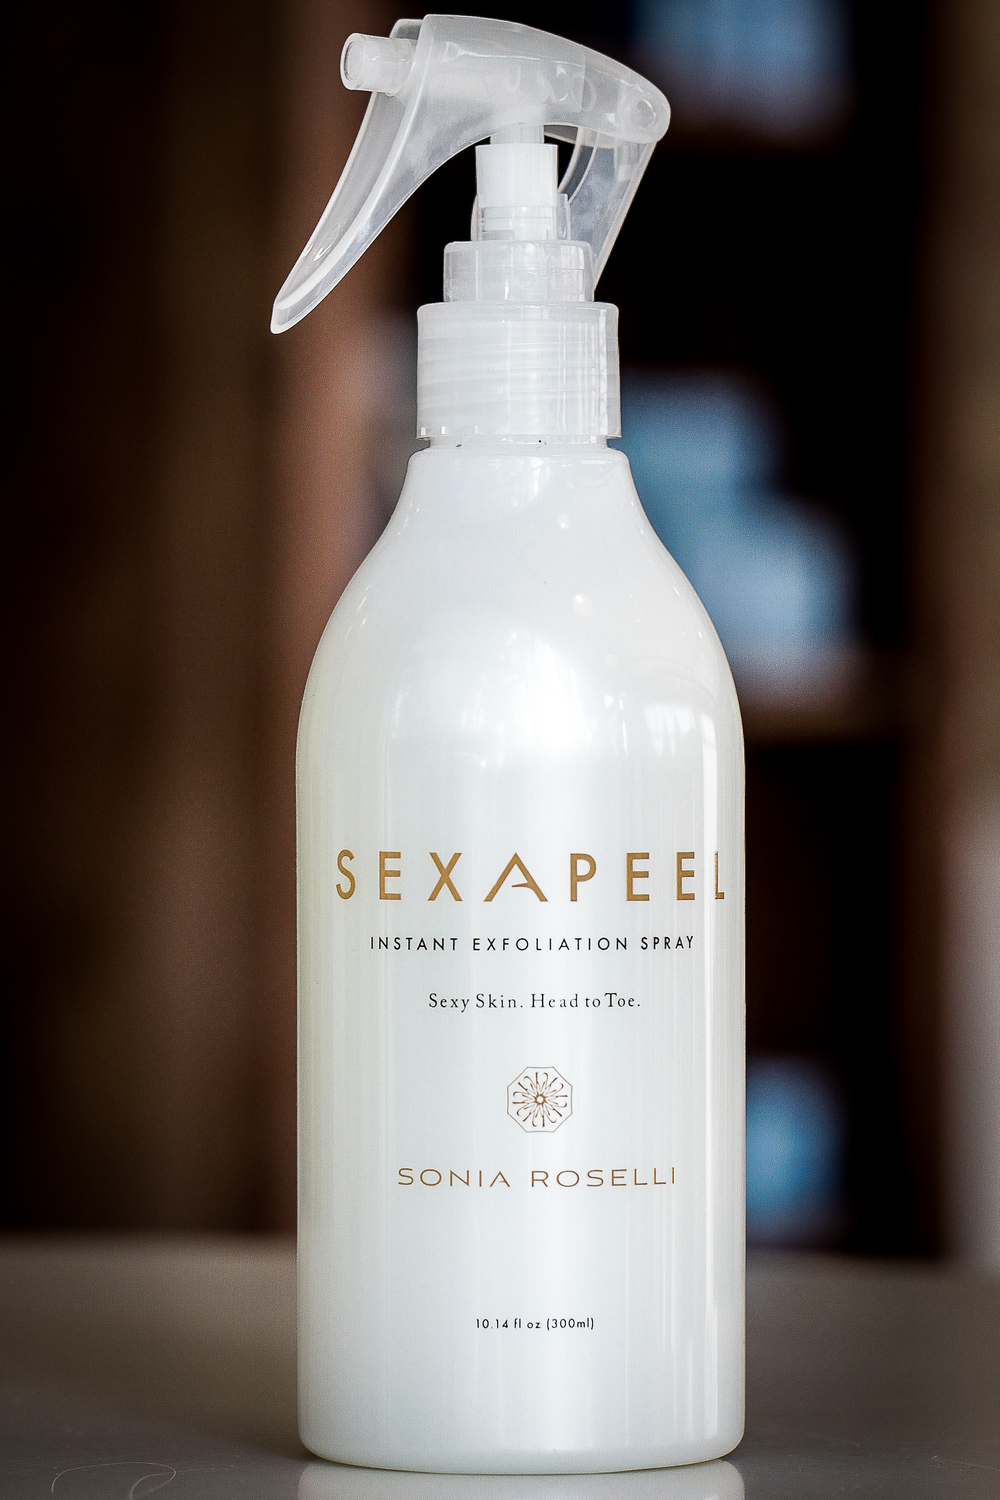 sex-a-peel-instant-exfoliating-spray